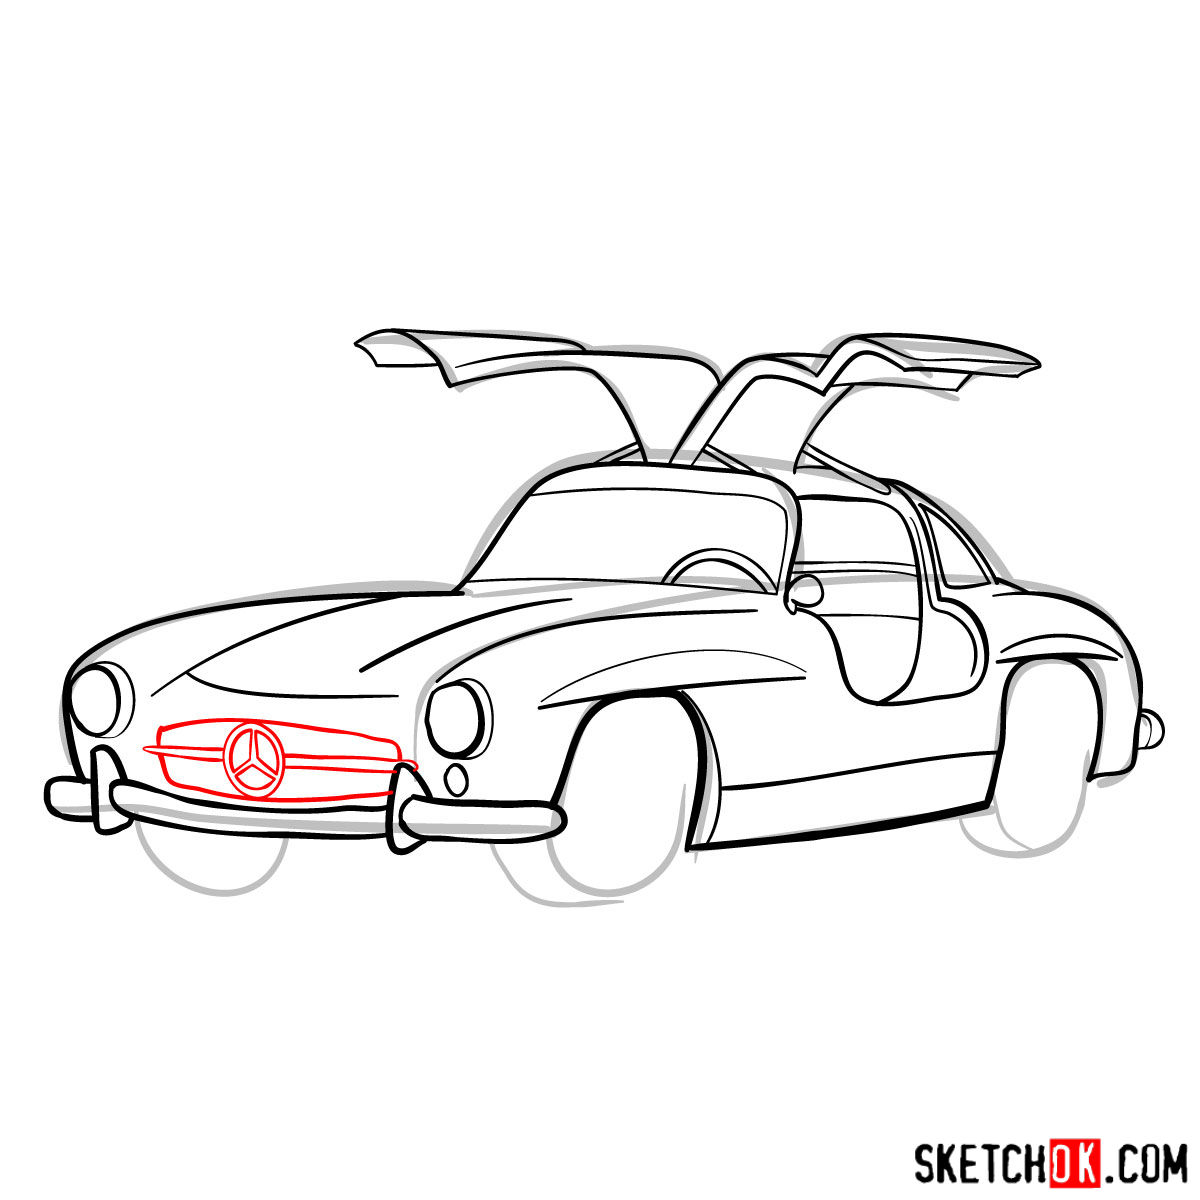 How to draw Mercedes-Benz 300SL Gullwing- - step 11